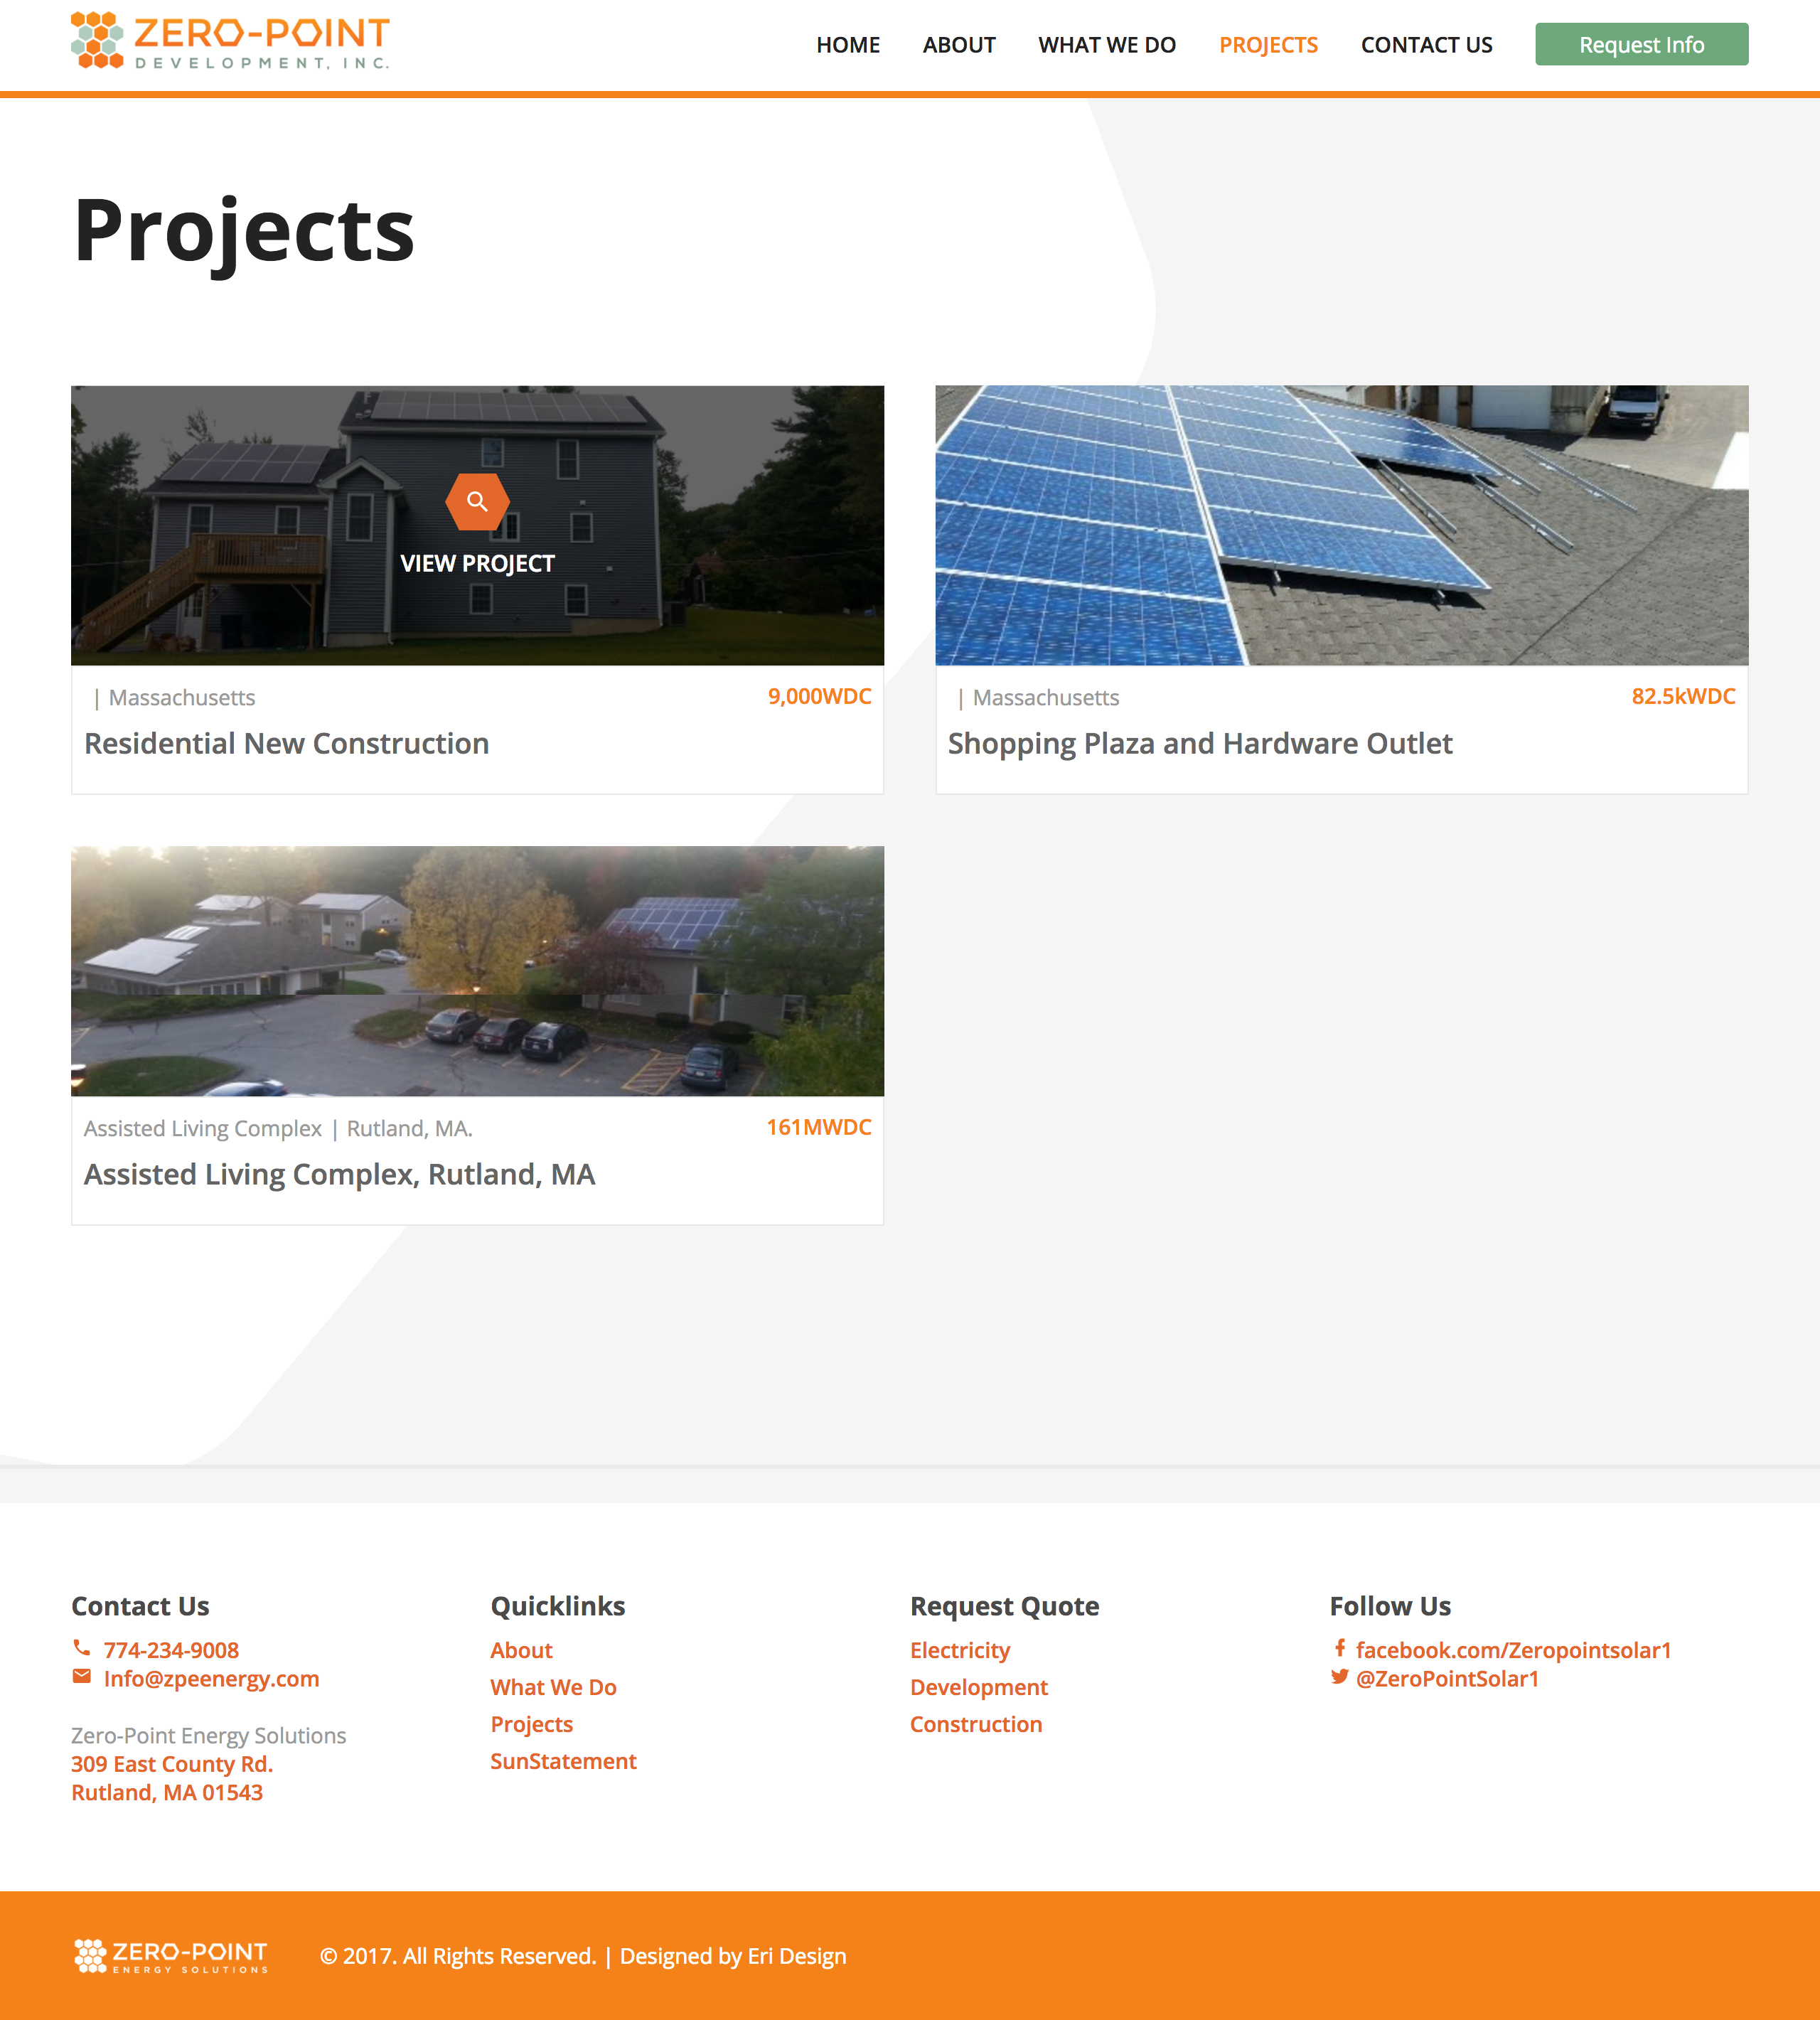 Zero-Point Development Projects Page